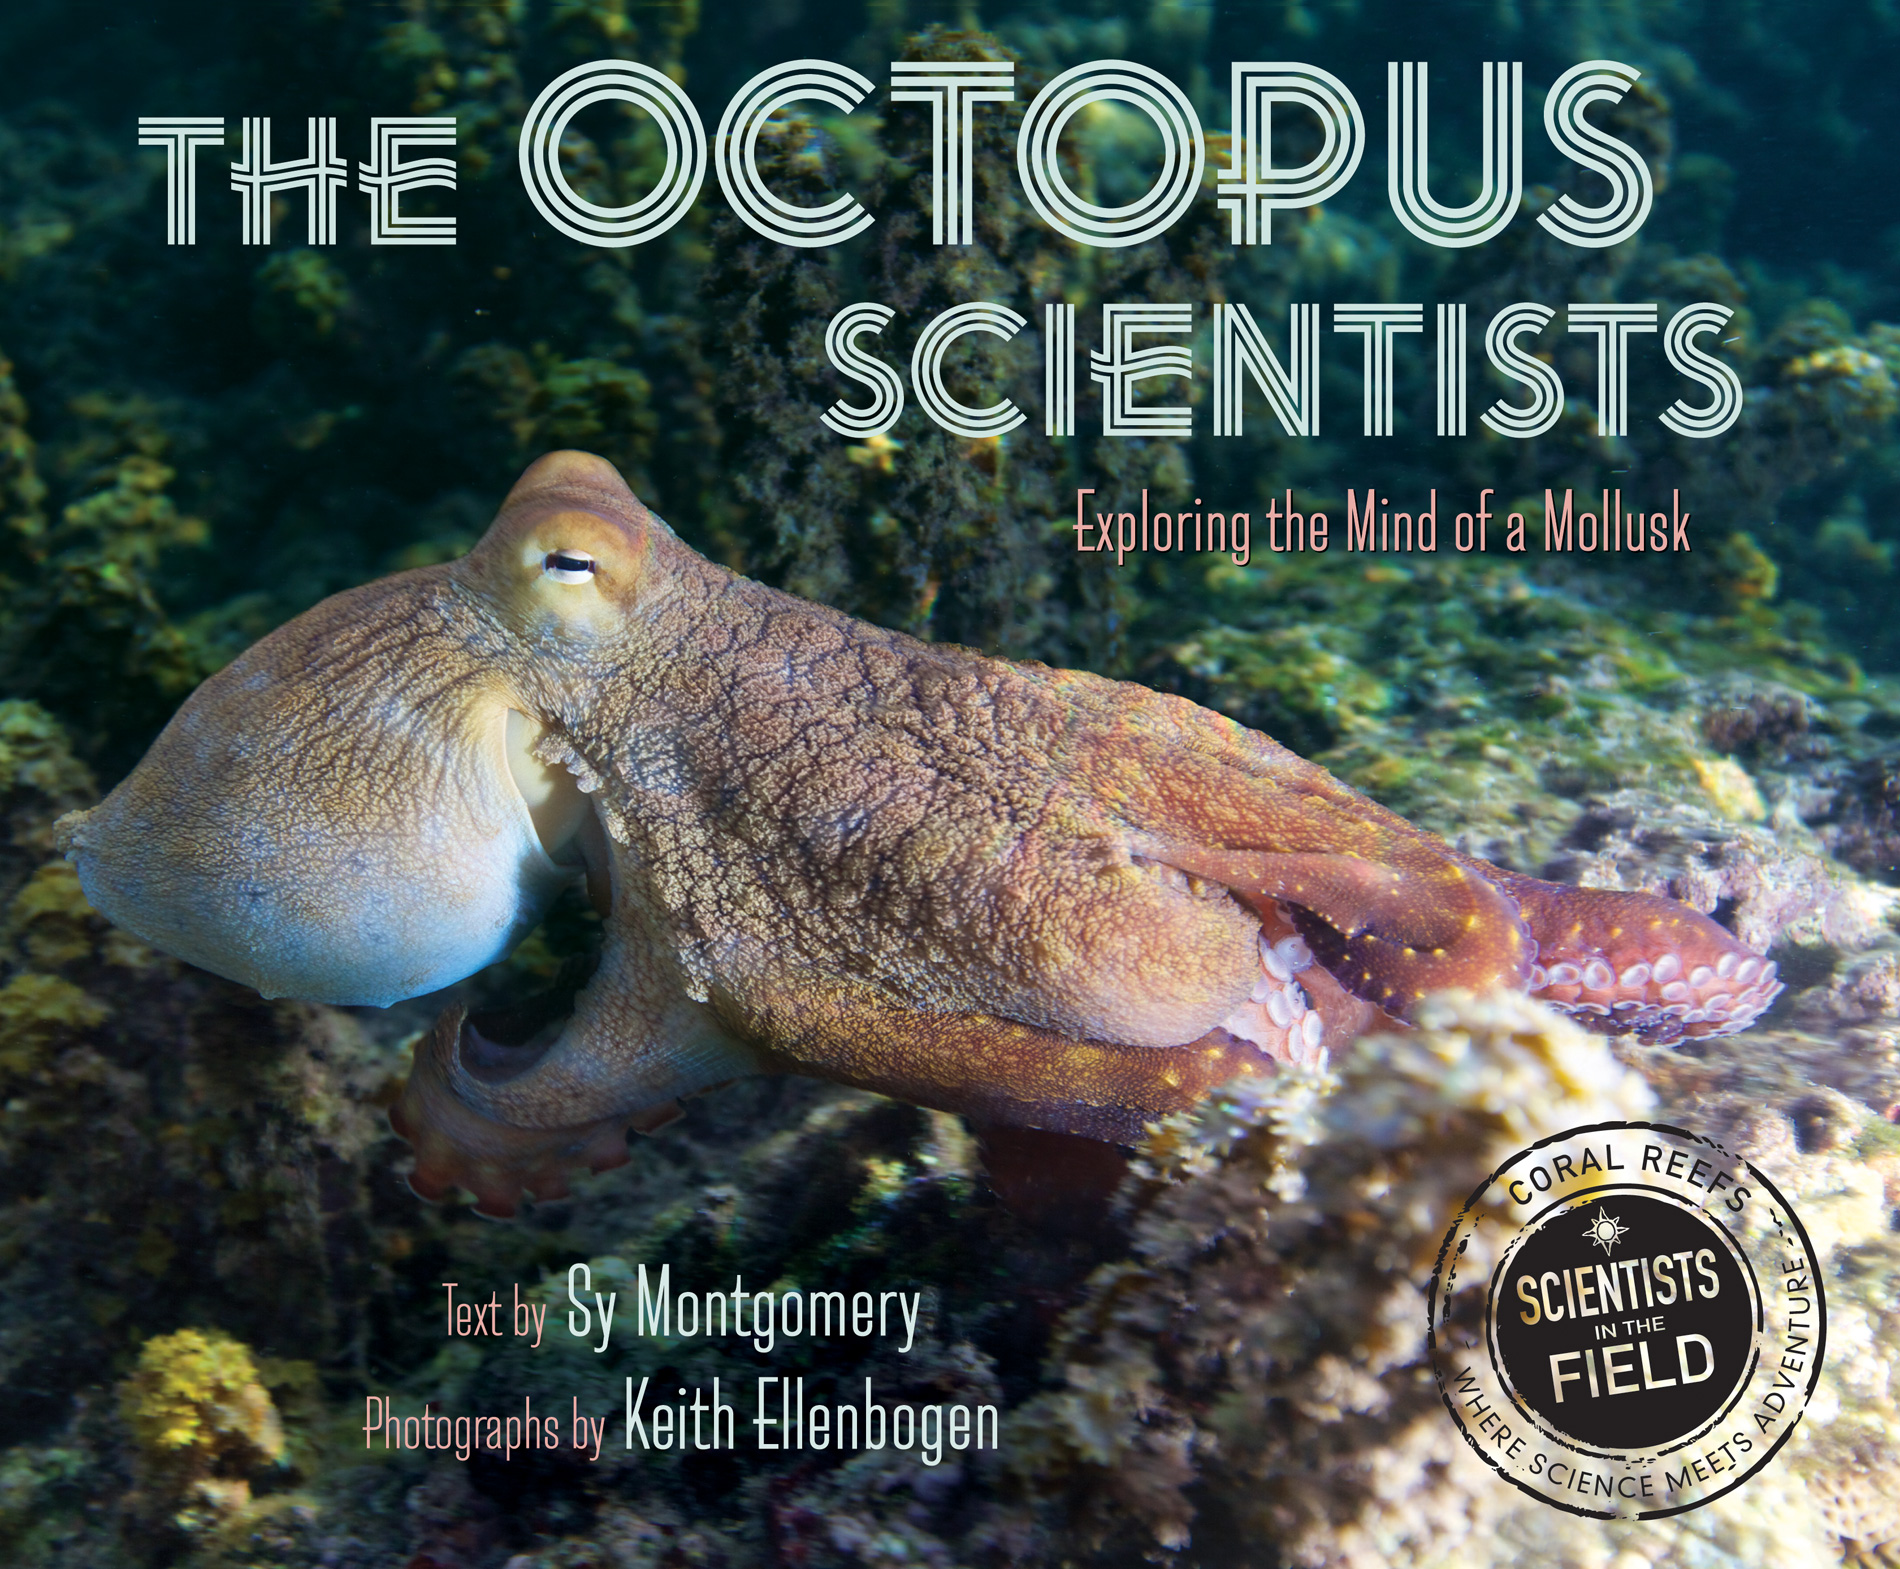 The Octopus Scientists-9780544232709